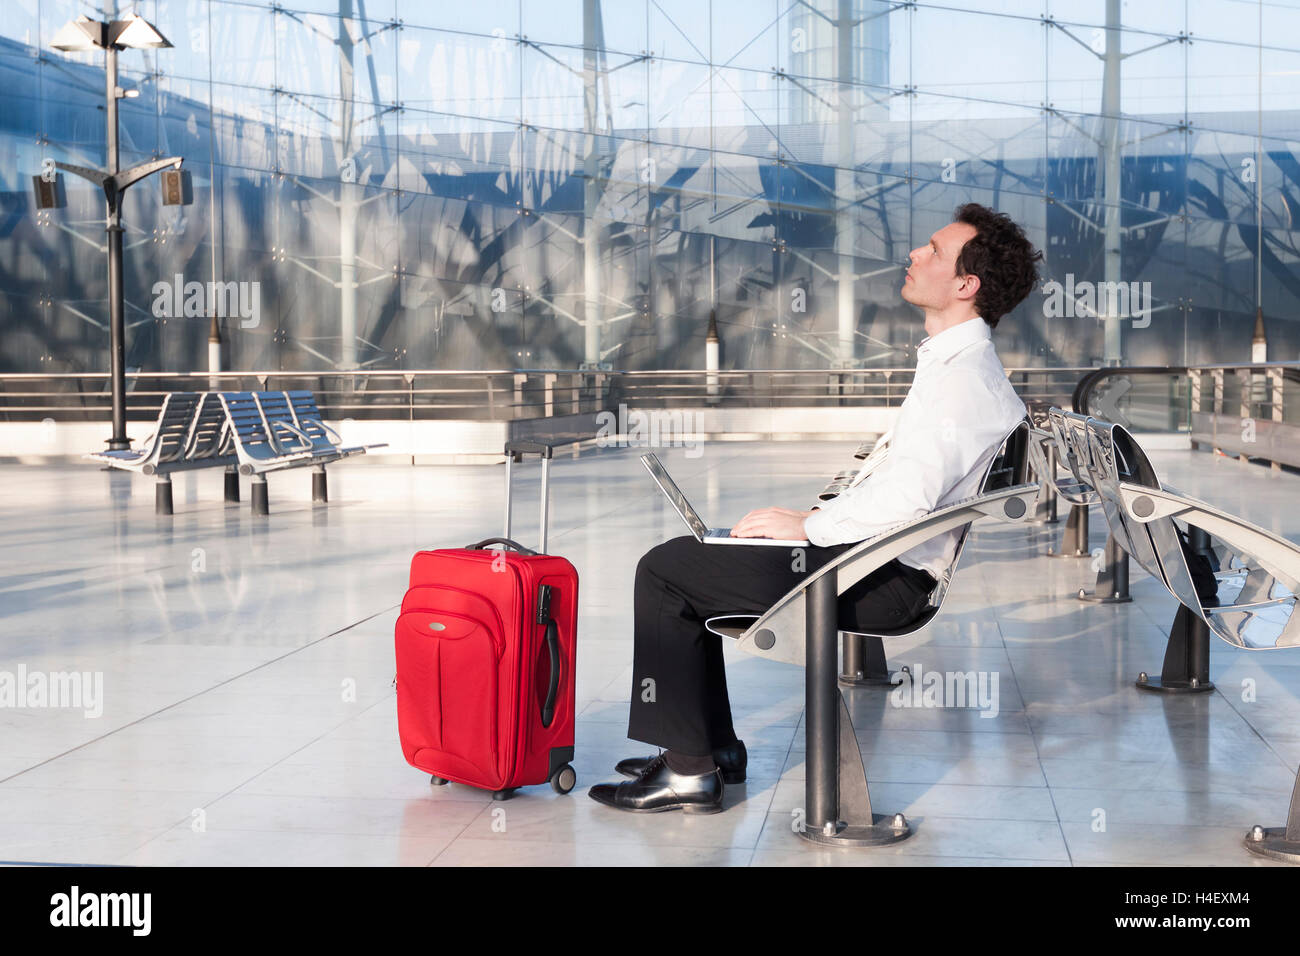 Businessman imagining ideas while waiting in airport lounge - Stock Image